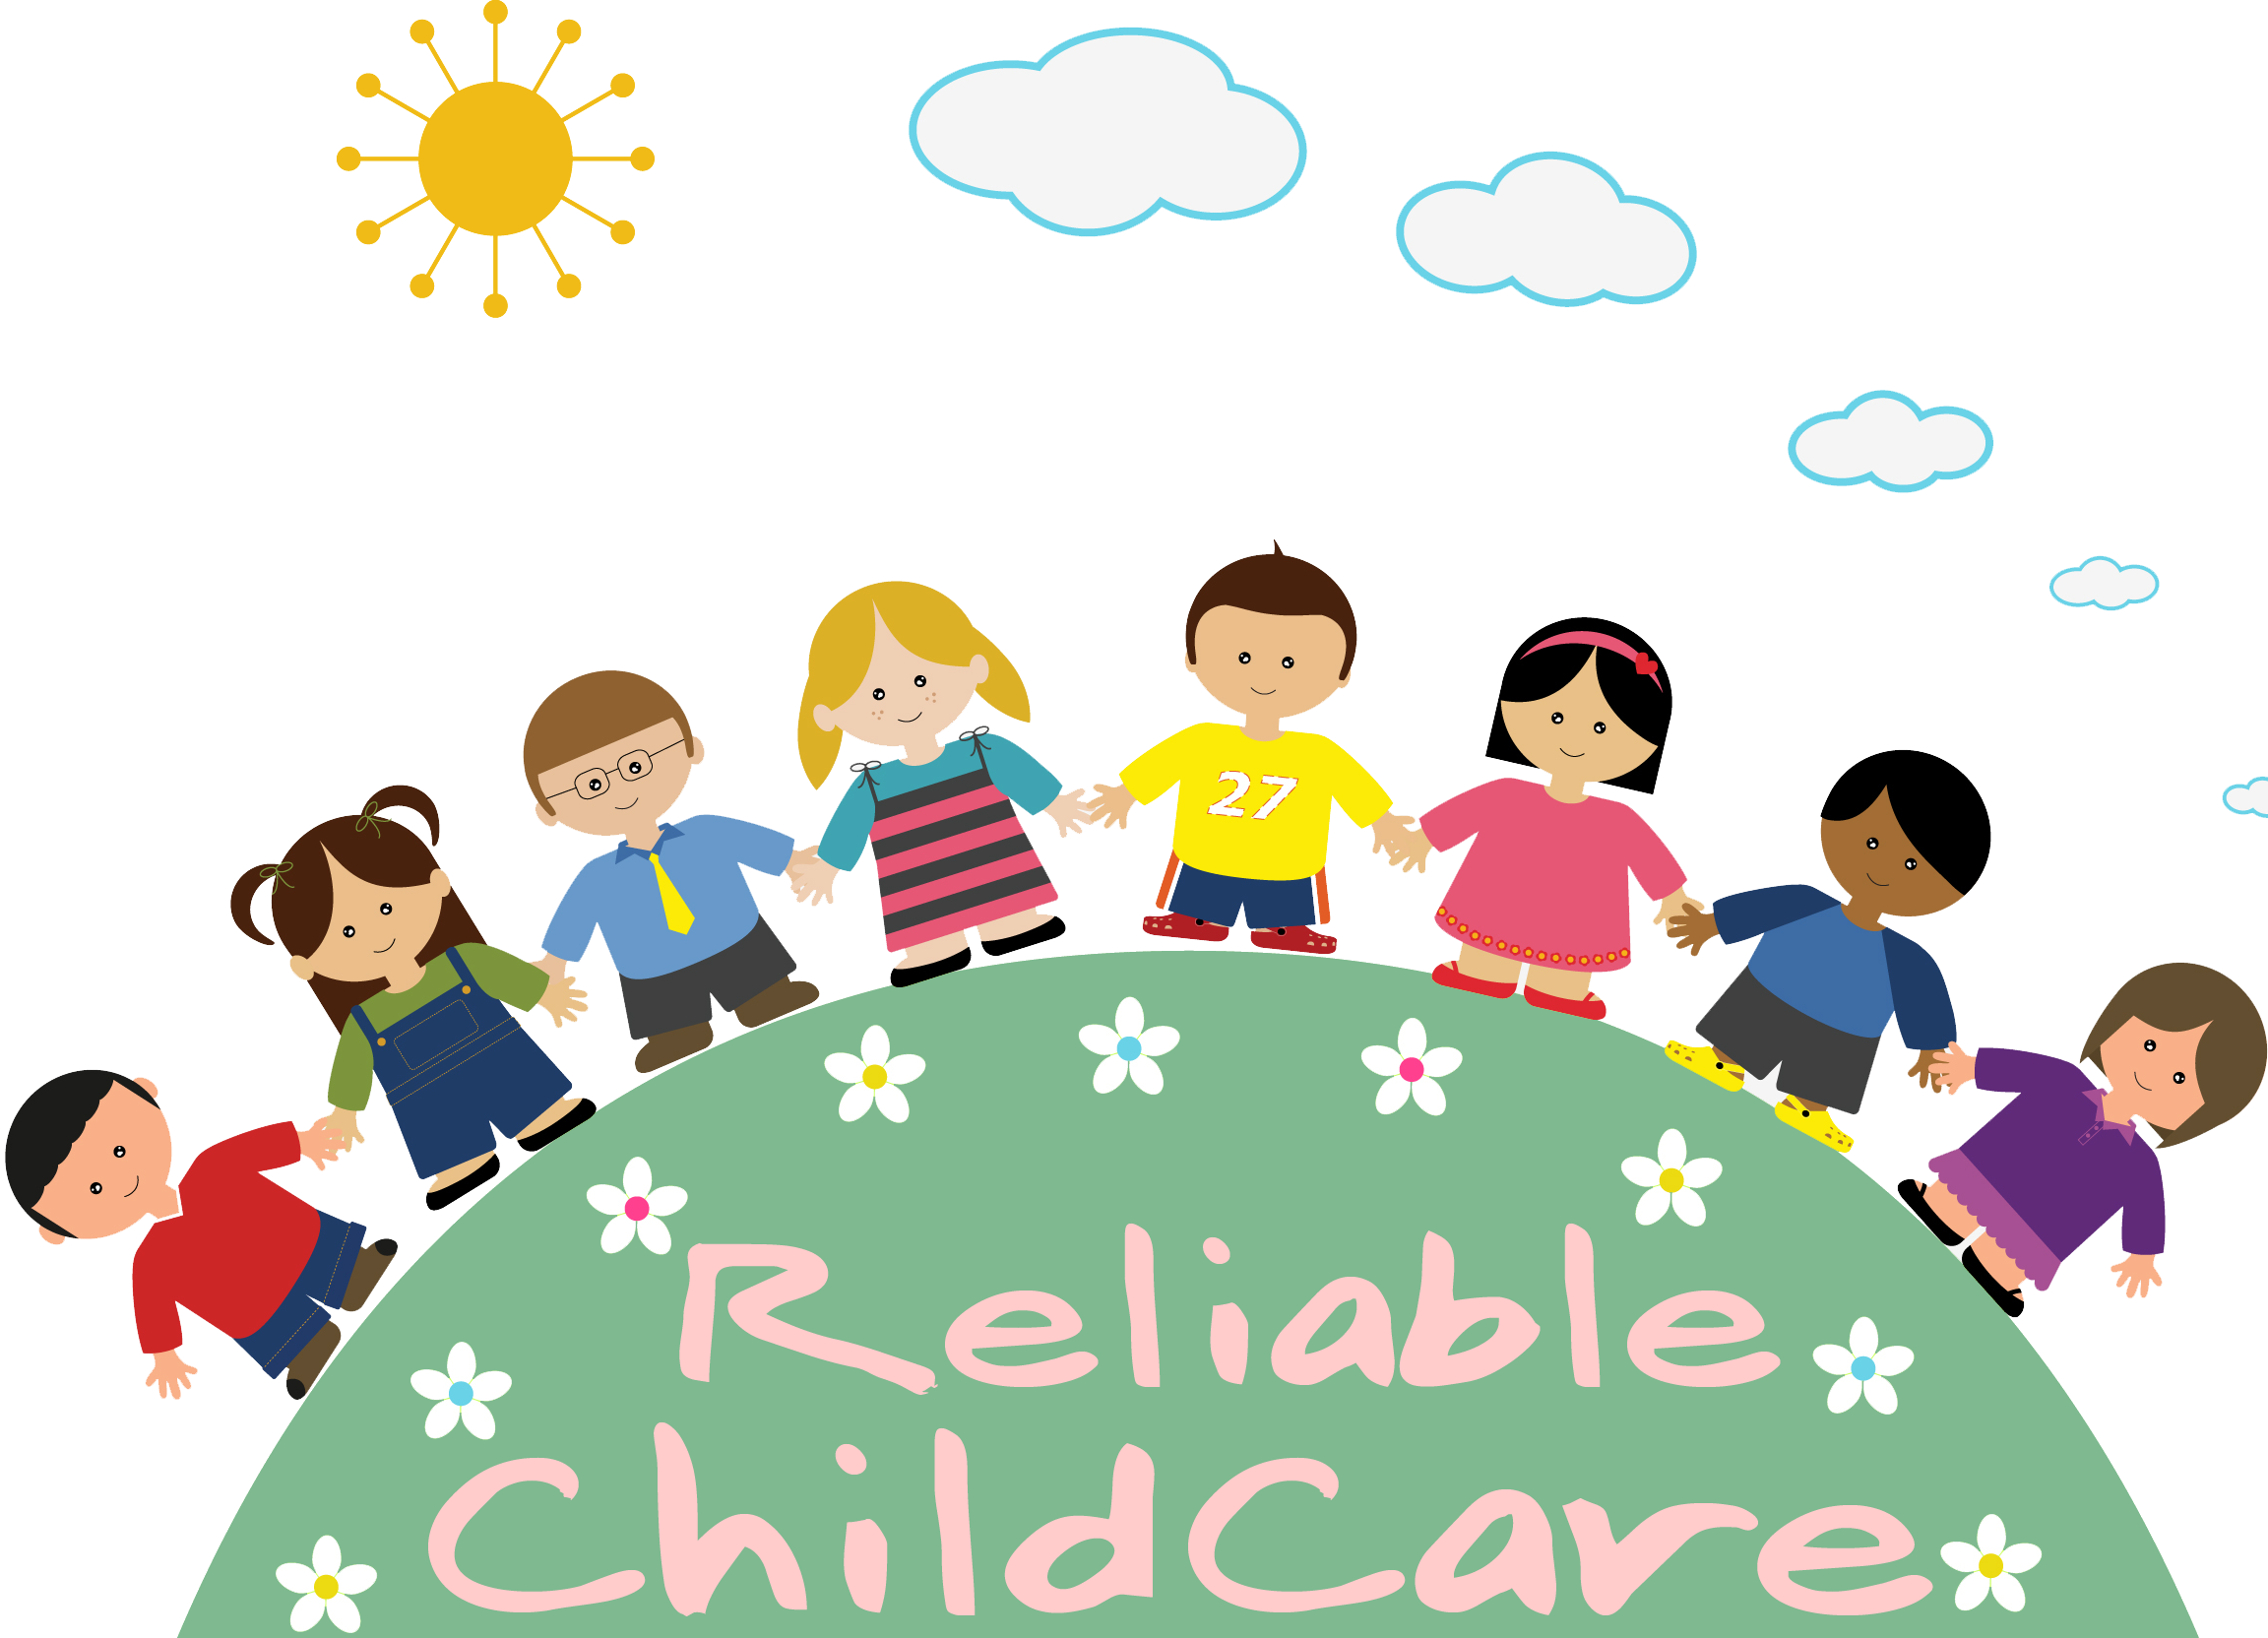 Reliable Child Care Png #42461.